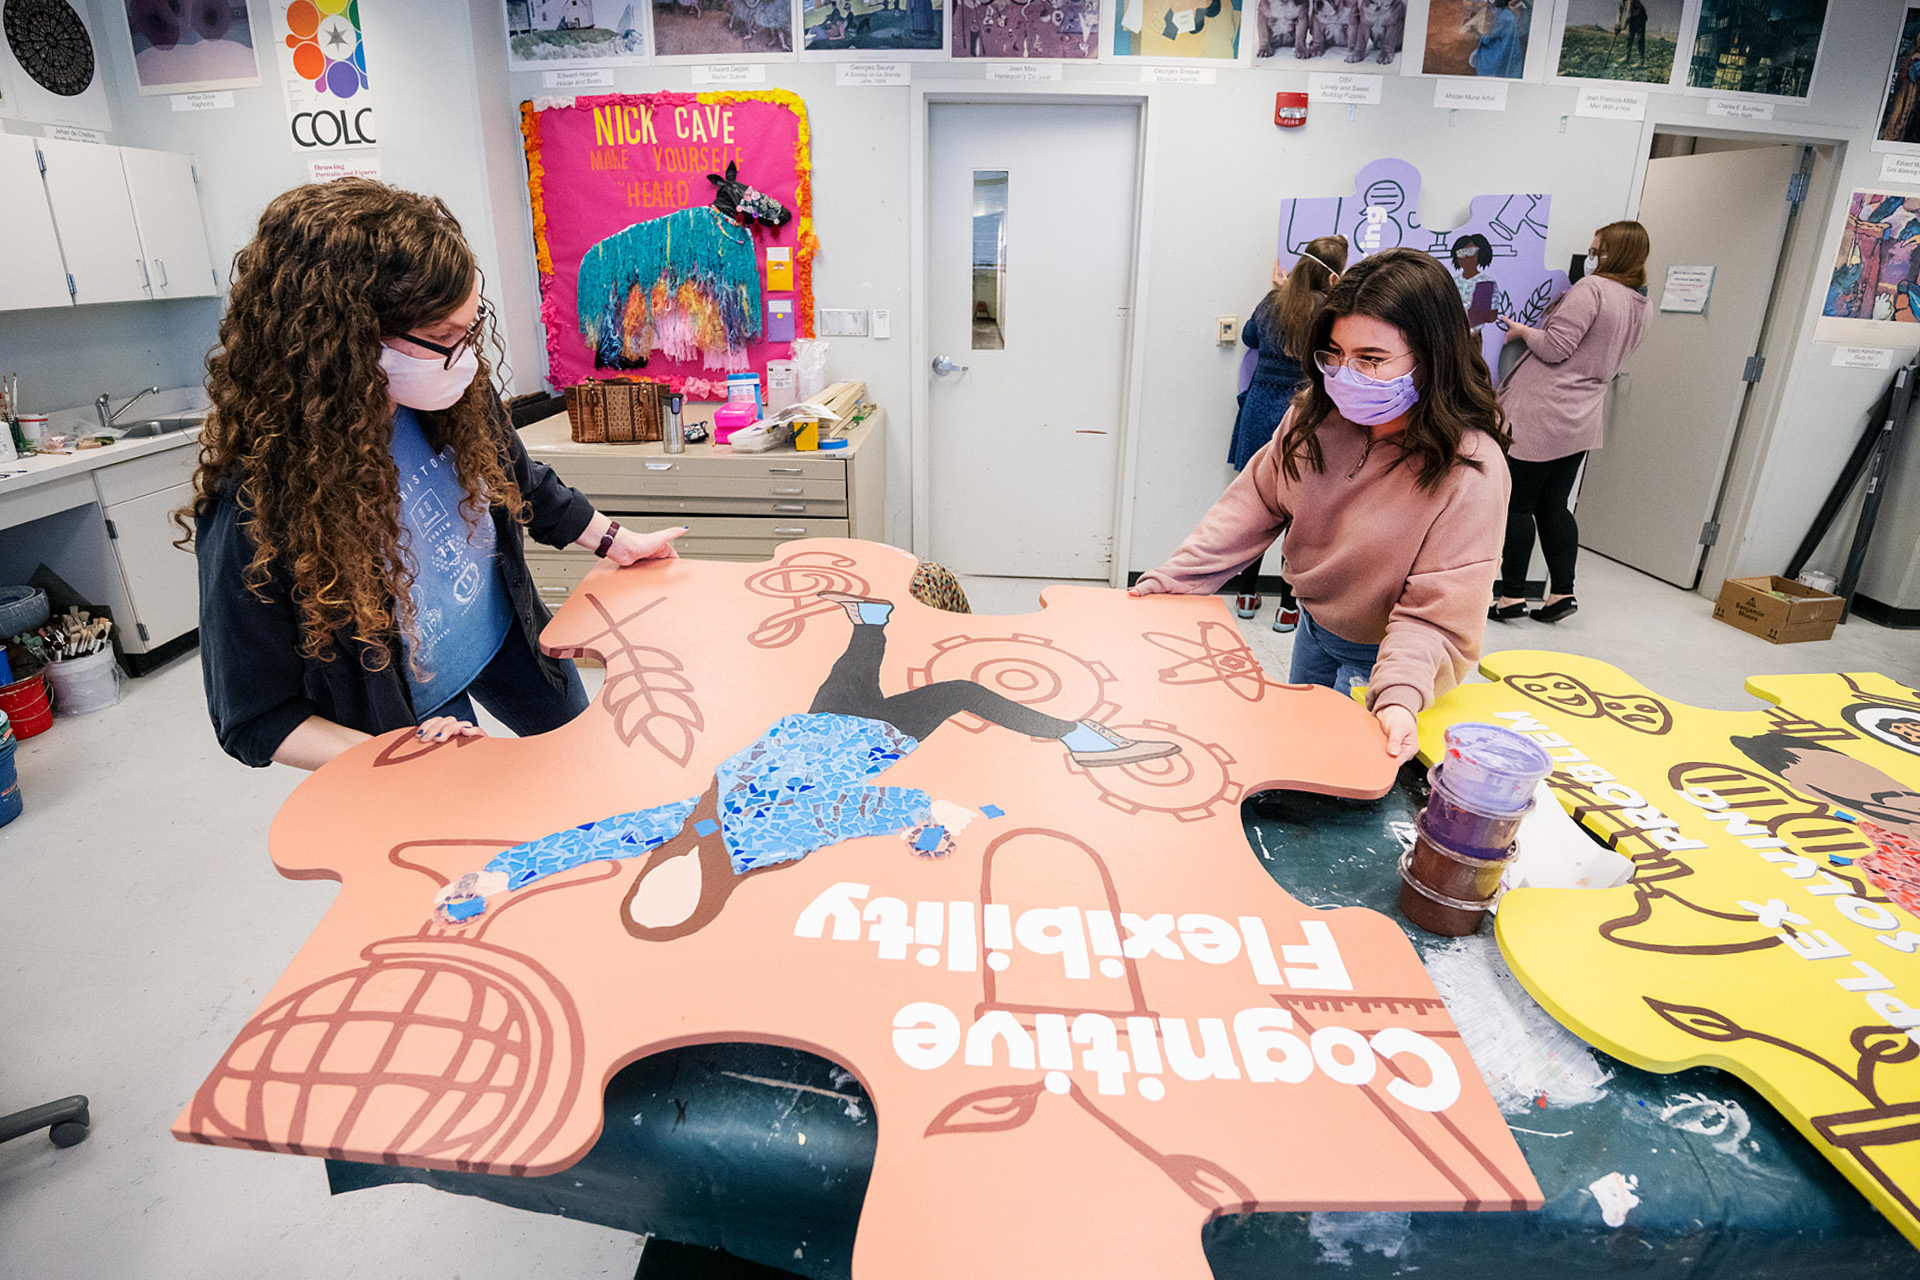 "MTSU senior art education majors Kaitlyn Estes, left, of Murfreesboro and Adriana Castro of Smyrna, Tenn., carefully move an oversized wooden puzzle piece for ""cognitive flexibility"" in Todd Hall Thursday, Nov. 19. The 10 different handcrafted puzzle pieces, touched up, with mosaics added, and ready for display, are part of a public art project collaboration between the College of Liberal Arts and the College of Basic and Applied Sciences to show students the interdisciplinary core skills they need for success. (MTSU photo by Andy Heidt)"